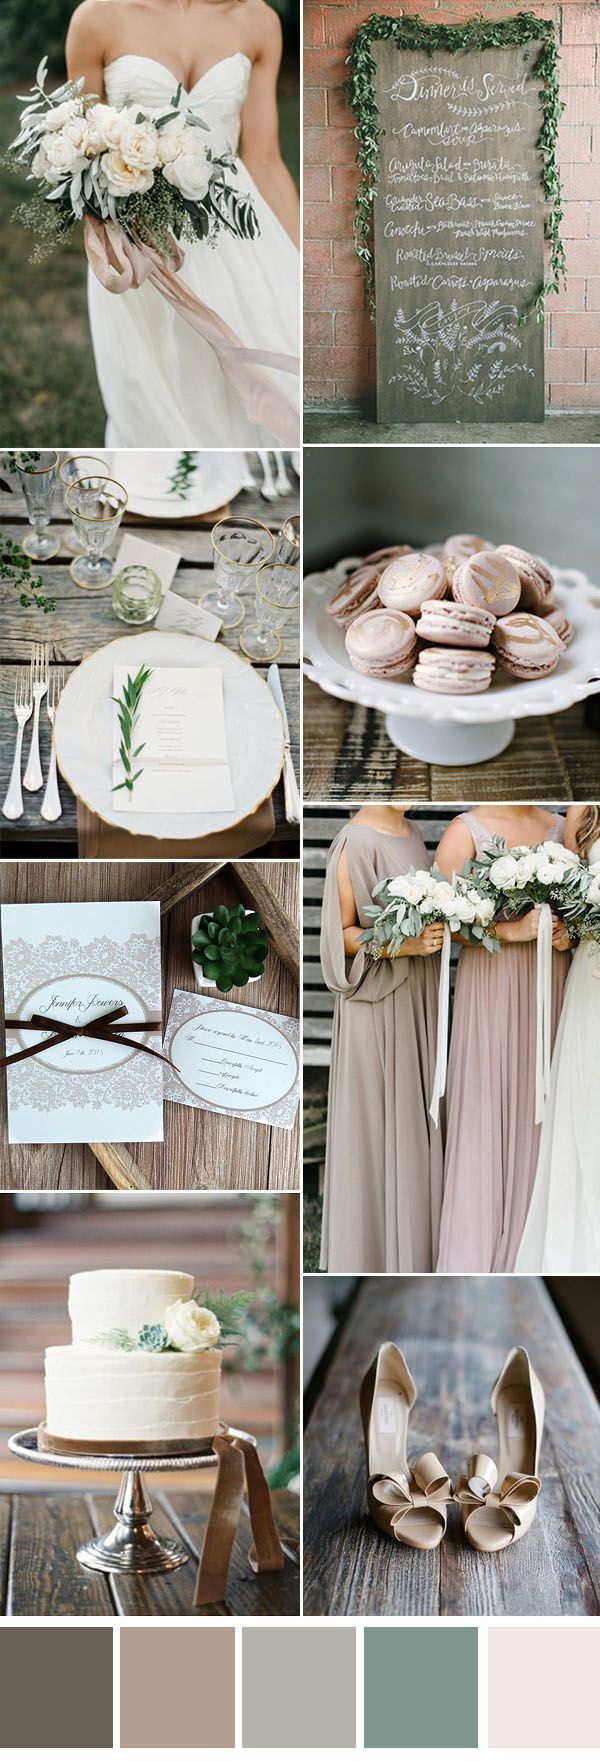 Wedding decorations using crepe paper october 2018  best  year anniversary images on Pinterest  Bridal gowns